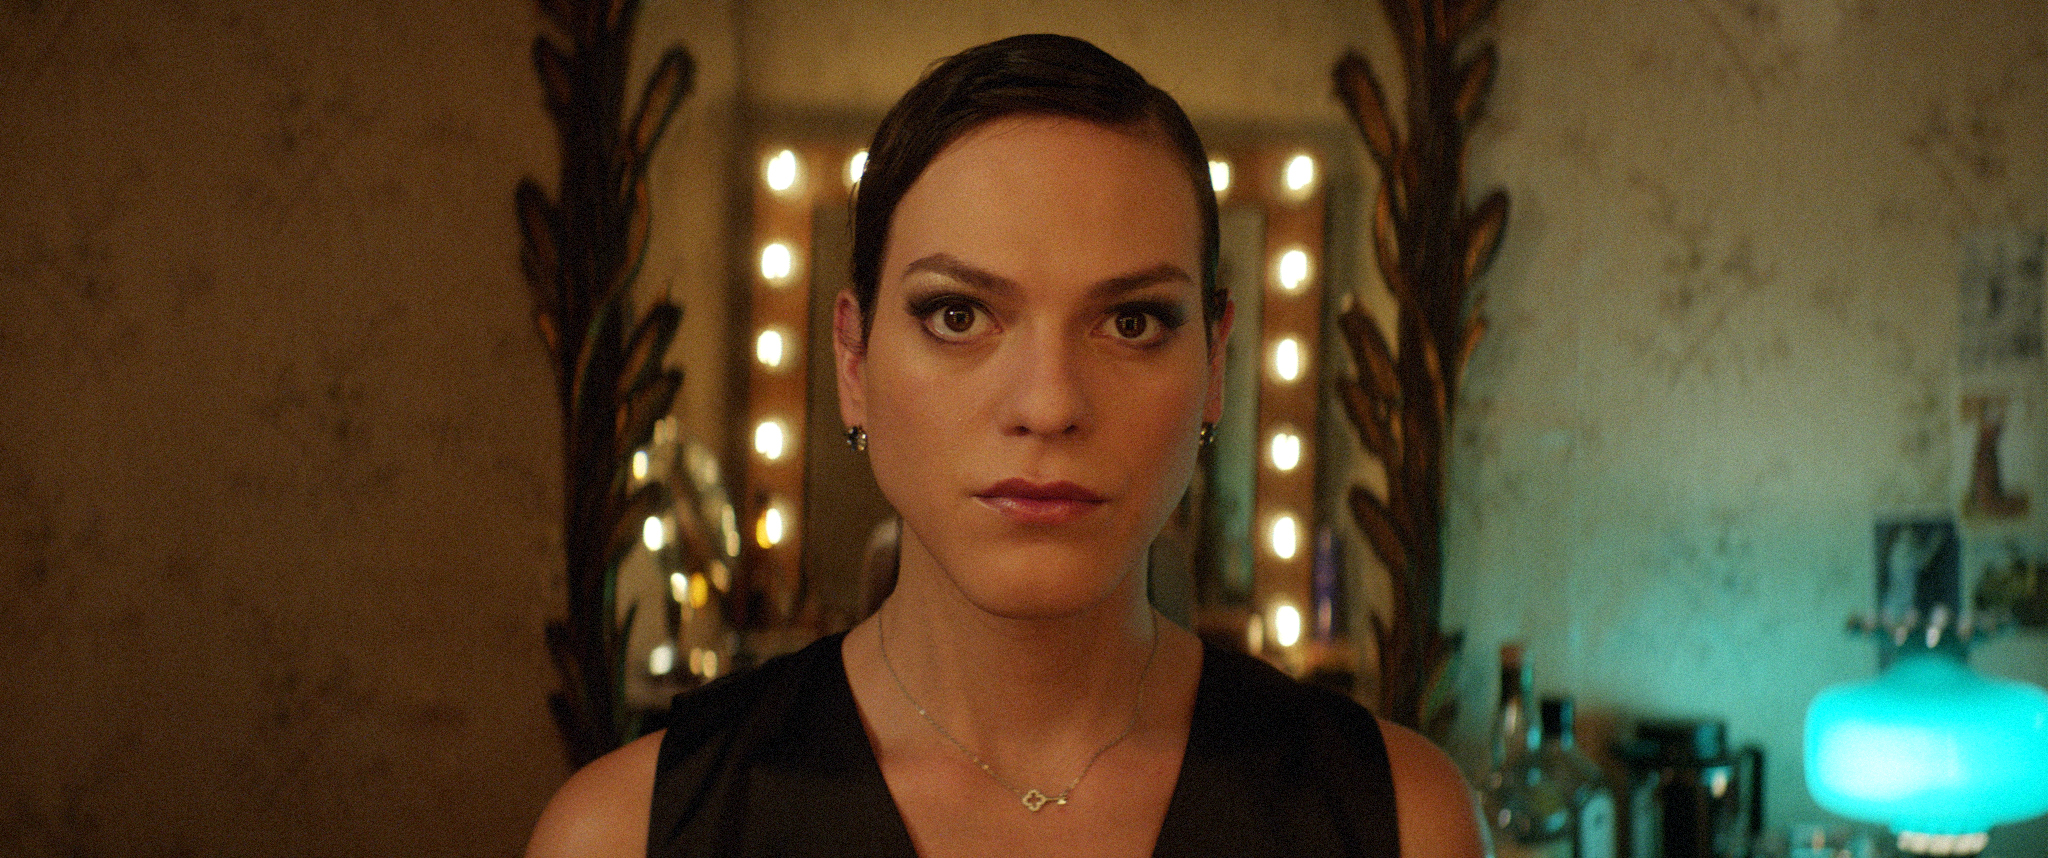 Chilean actress Daniela Vega stars in 'A Fantastic Woman,' which is up for best foreign language film at the 2018 Academy Awards.